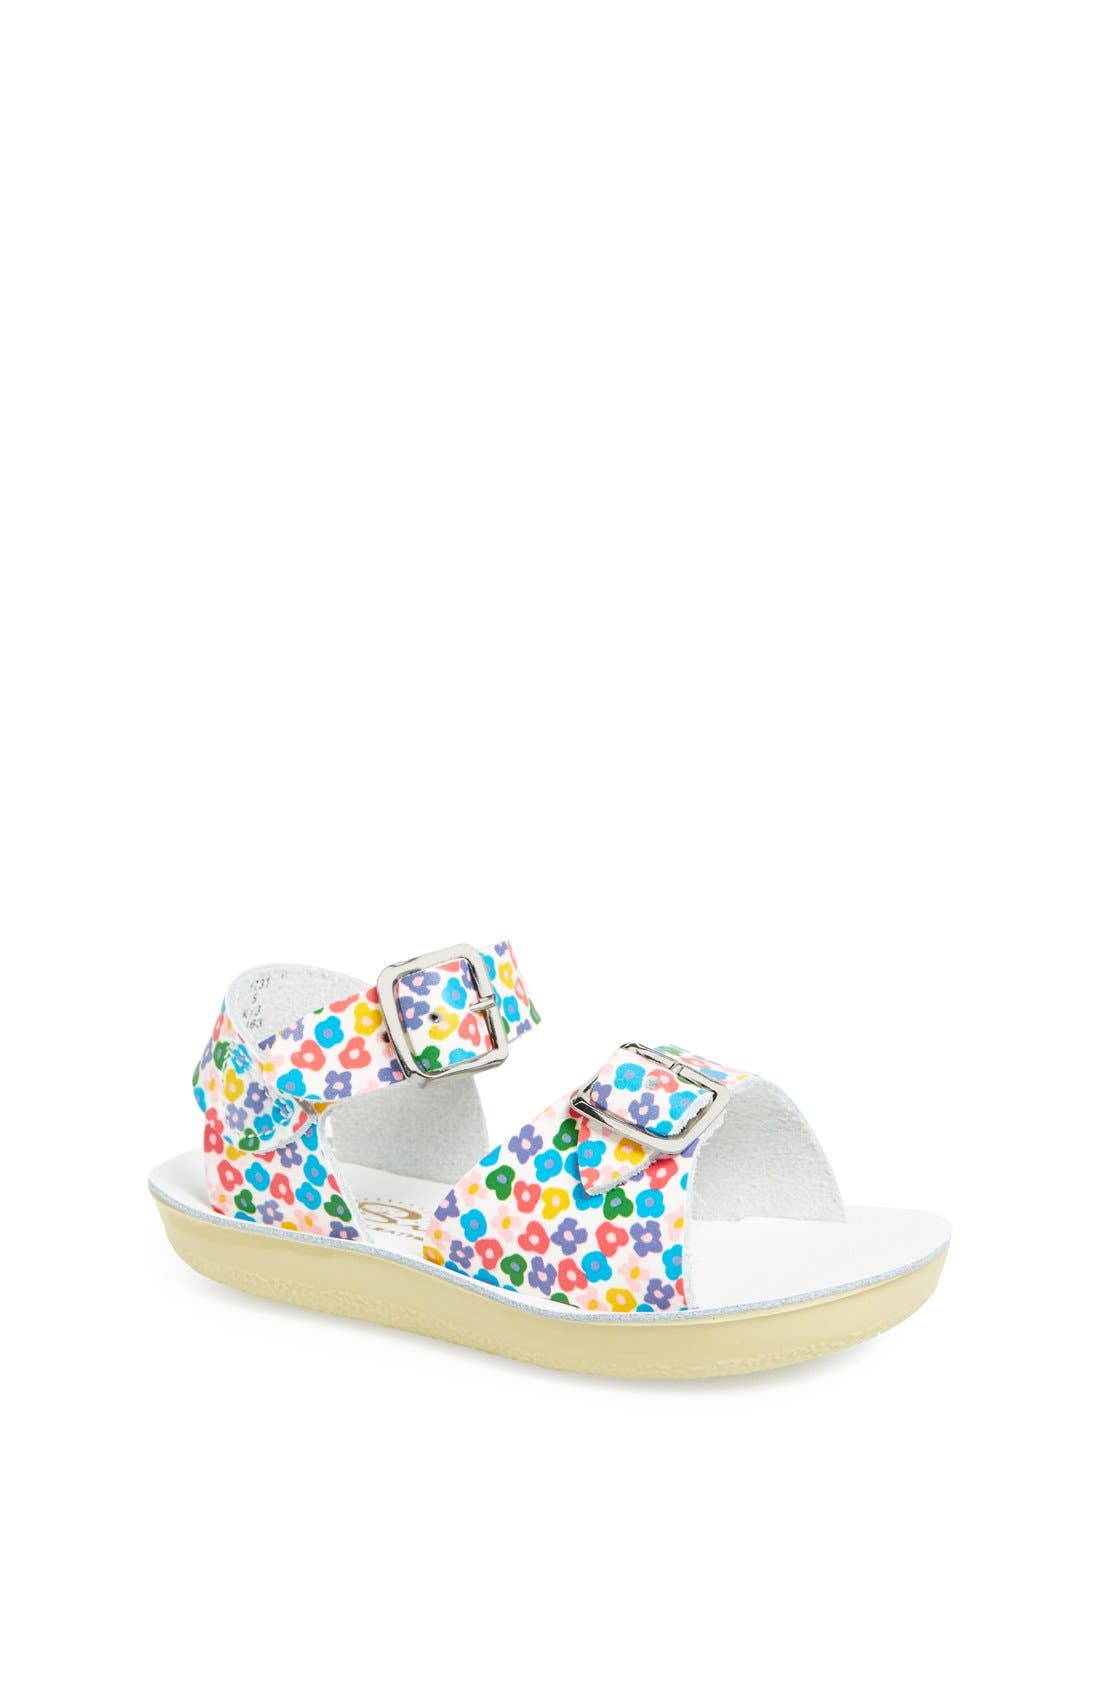 Main Image - Salt Water Sandals by Hoy 'Surfer' Sandal (Baby & Walker)